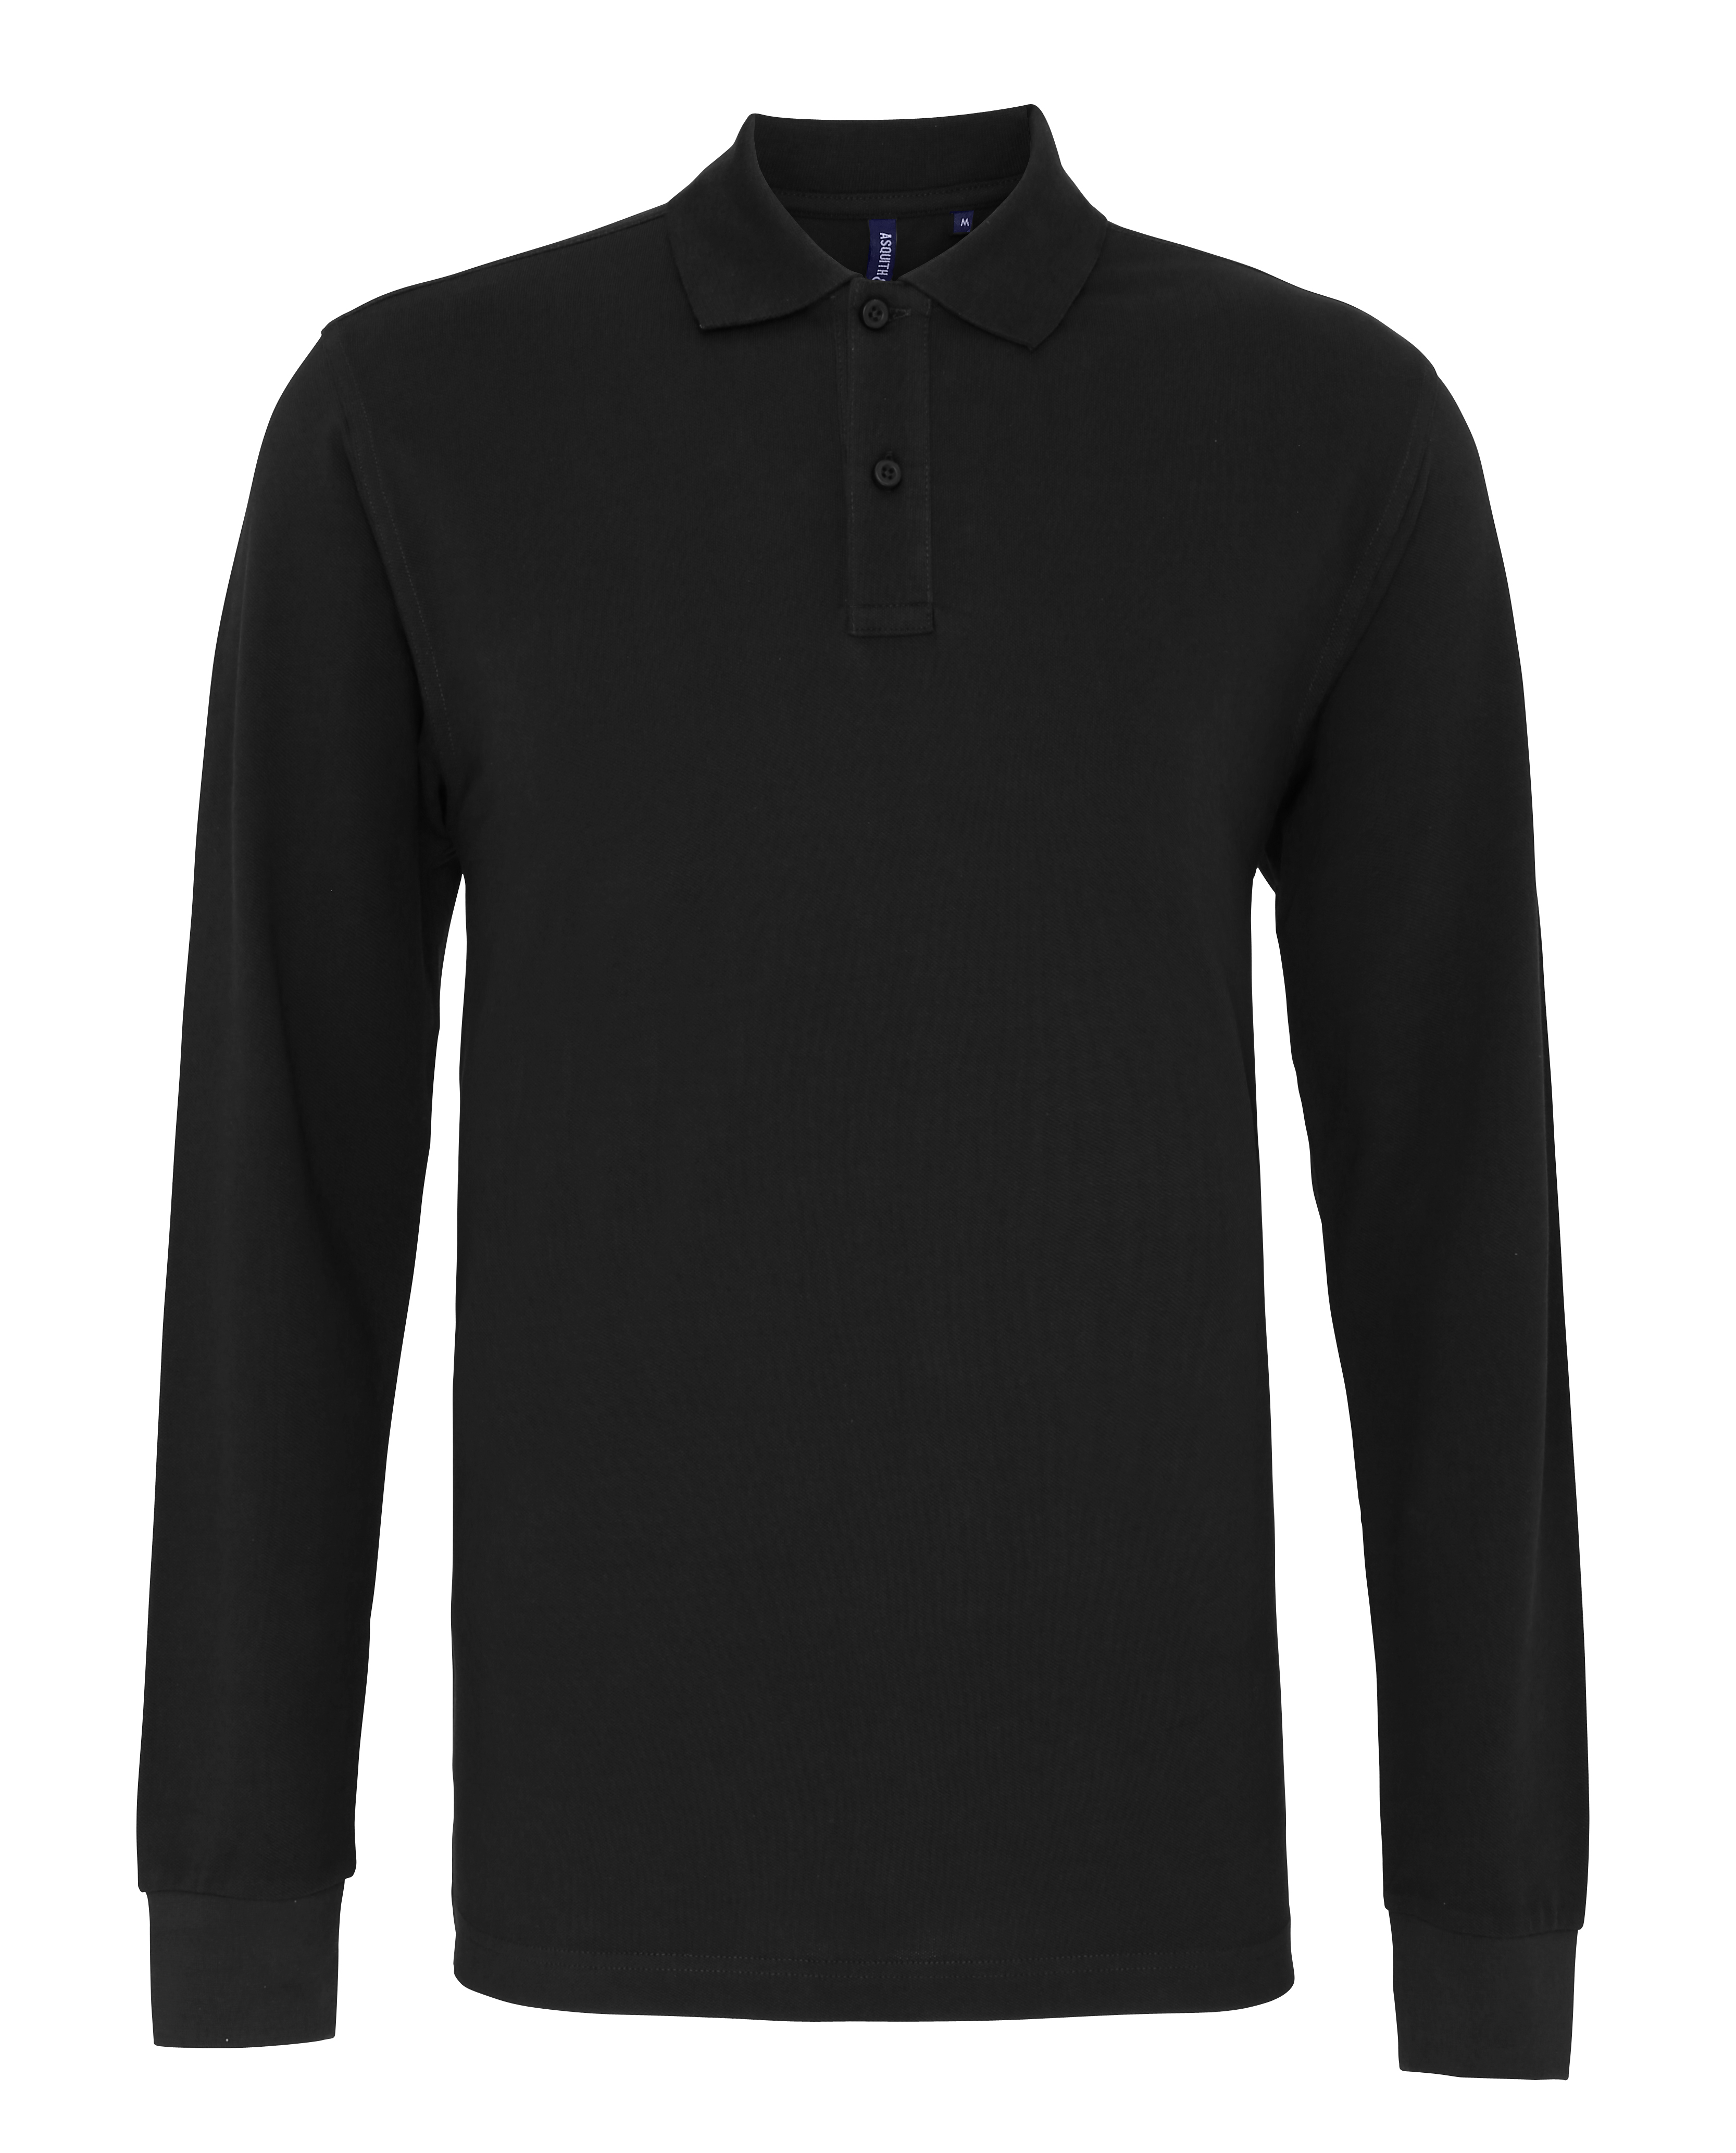 Mens-Asquith-amp-Fox-Classic-Fit-Long-Sleeved-Knitted-Cuff-Polo-Shirt-Size-S-5XL